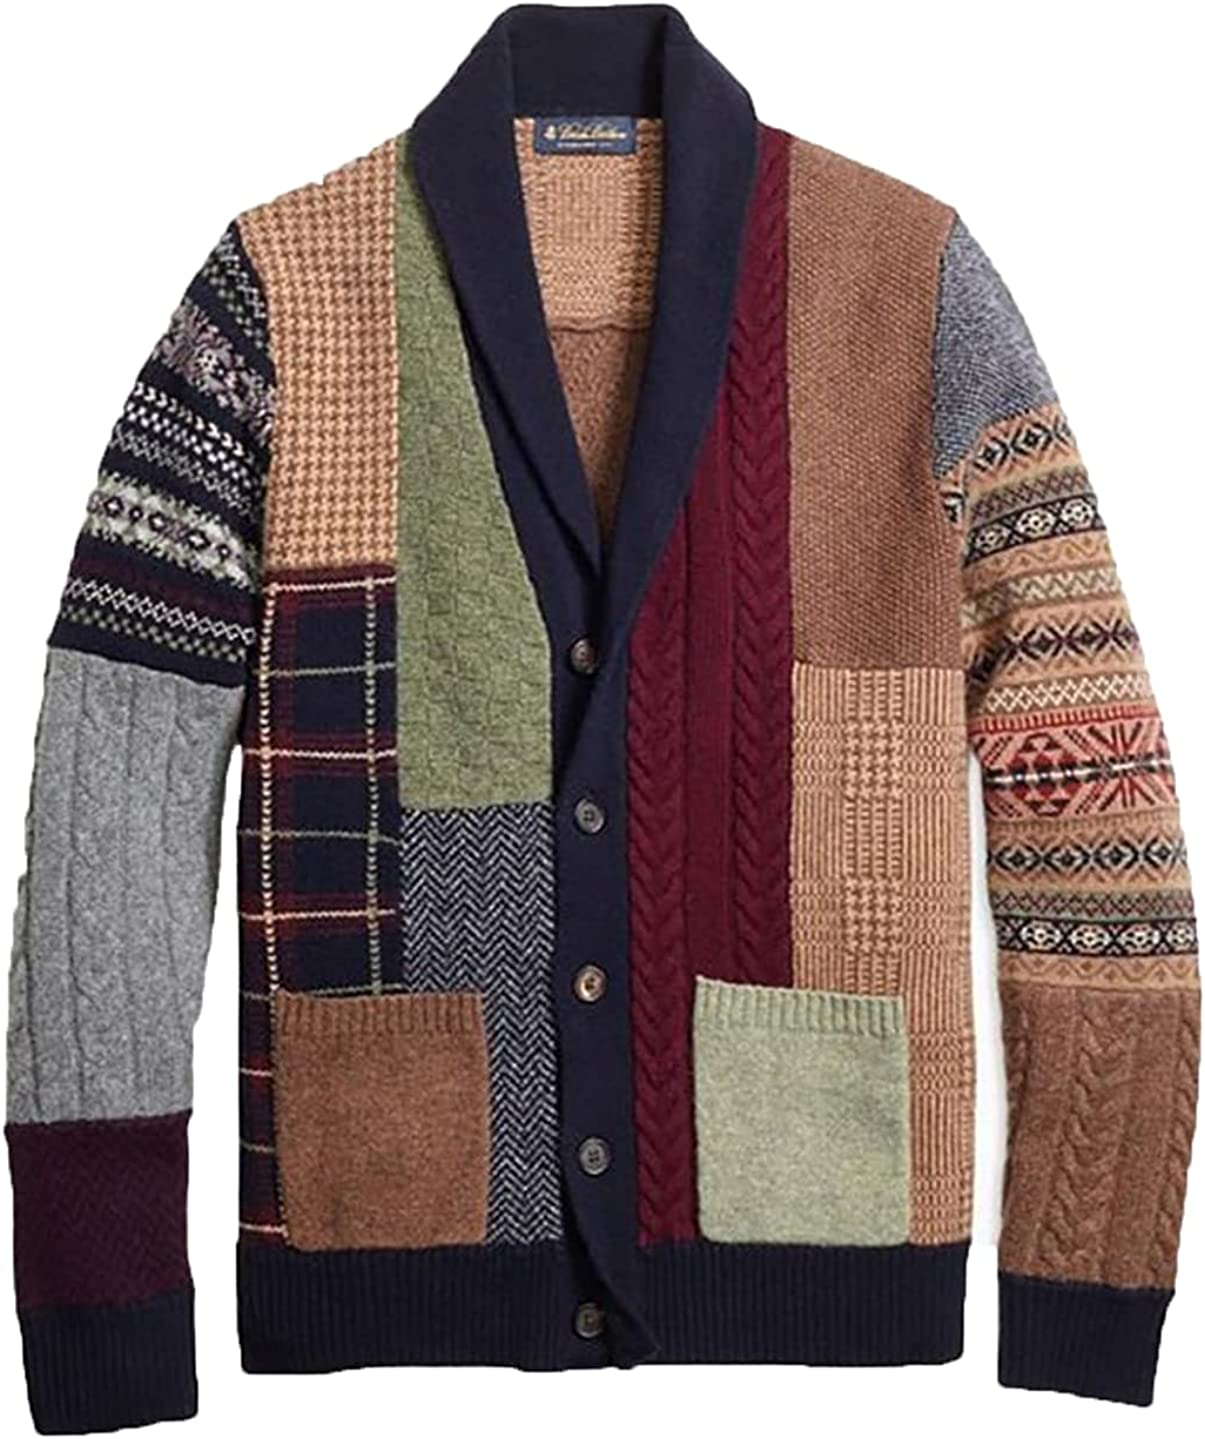 Mens Vintage Long Sleeve Single-Breasted Button Pocket Knitted Cardigan Sweater